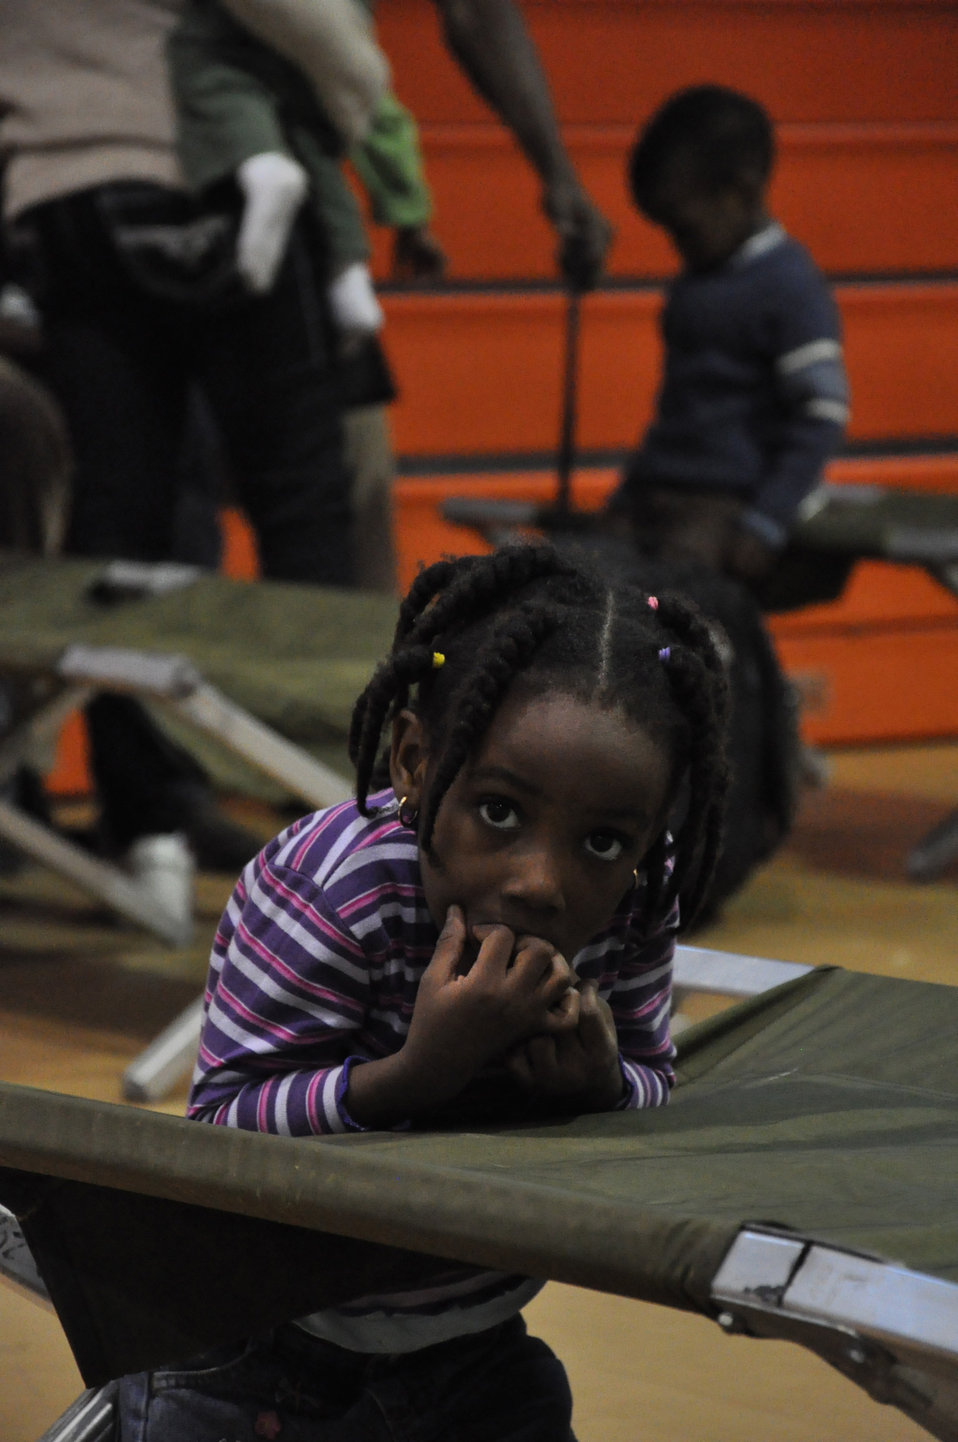 Homestead Air Reserve Base becomes hub for Haitian quake relief efforts